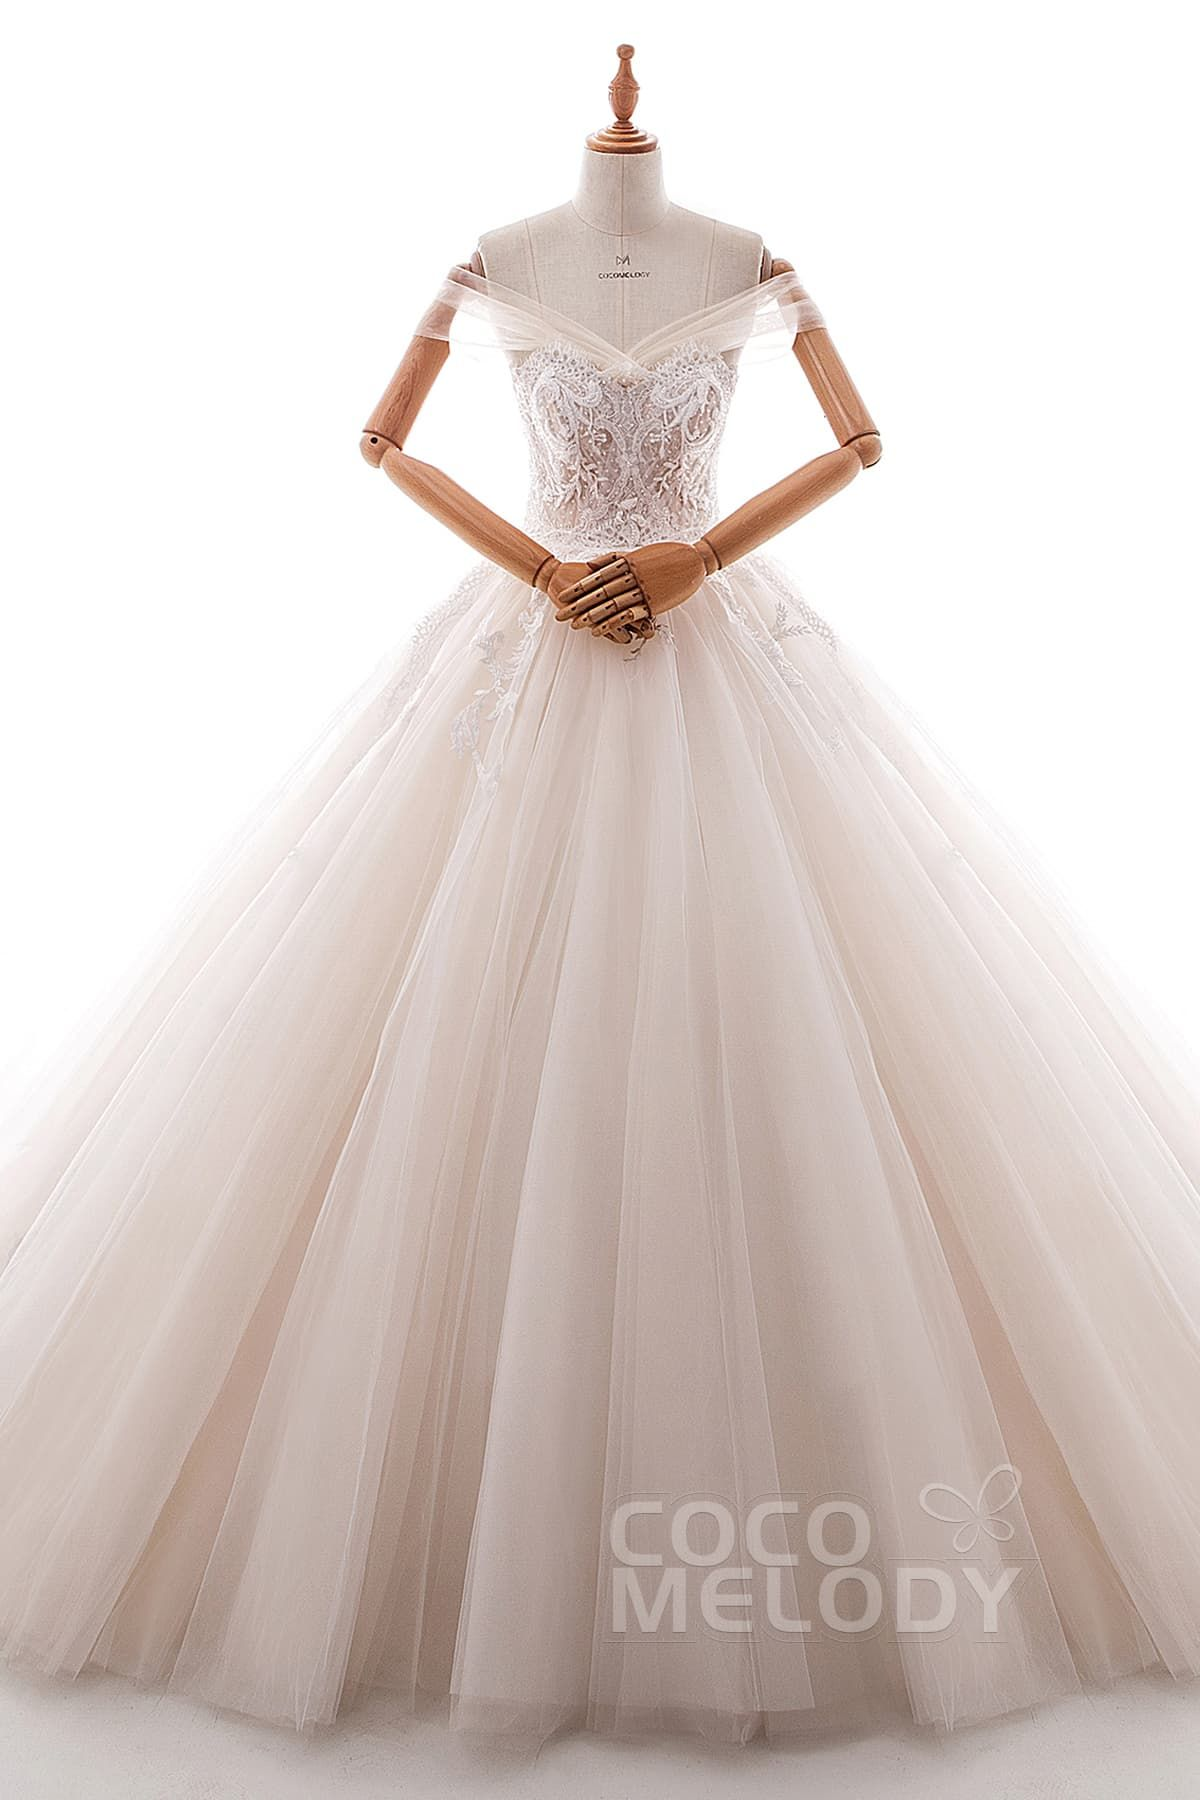 Champagne and ivory wedding dress  Princess Court Train Satin and Tulle Wedding Dress LD  Corset